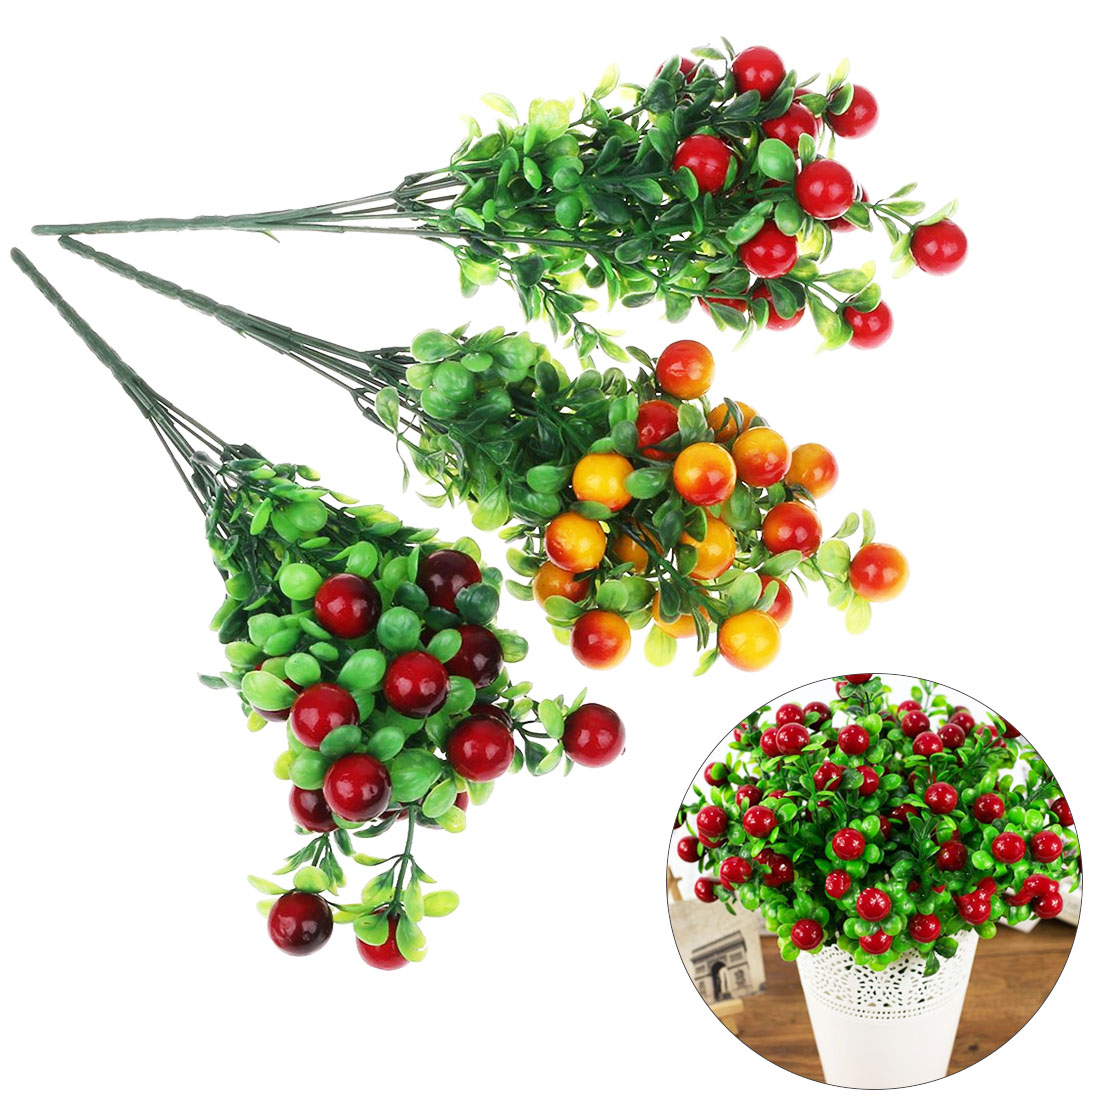 Artificial Lifelike Berries Fake Mini Simulation Decorative Fruit Plants DIY Craft Home Party Decoration Artificial Fruit